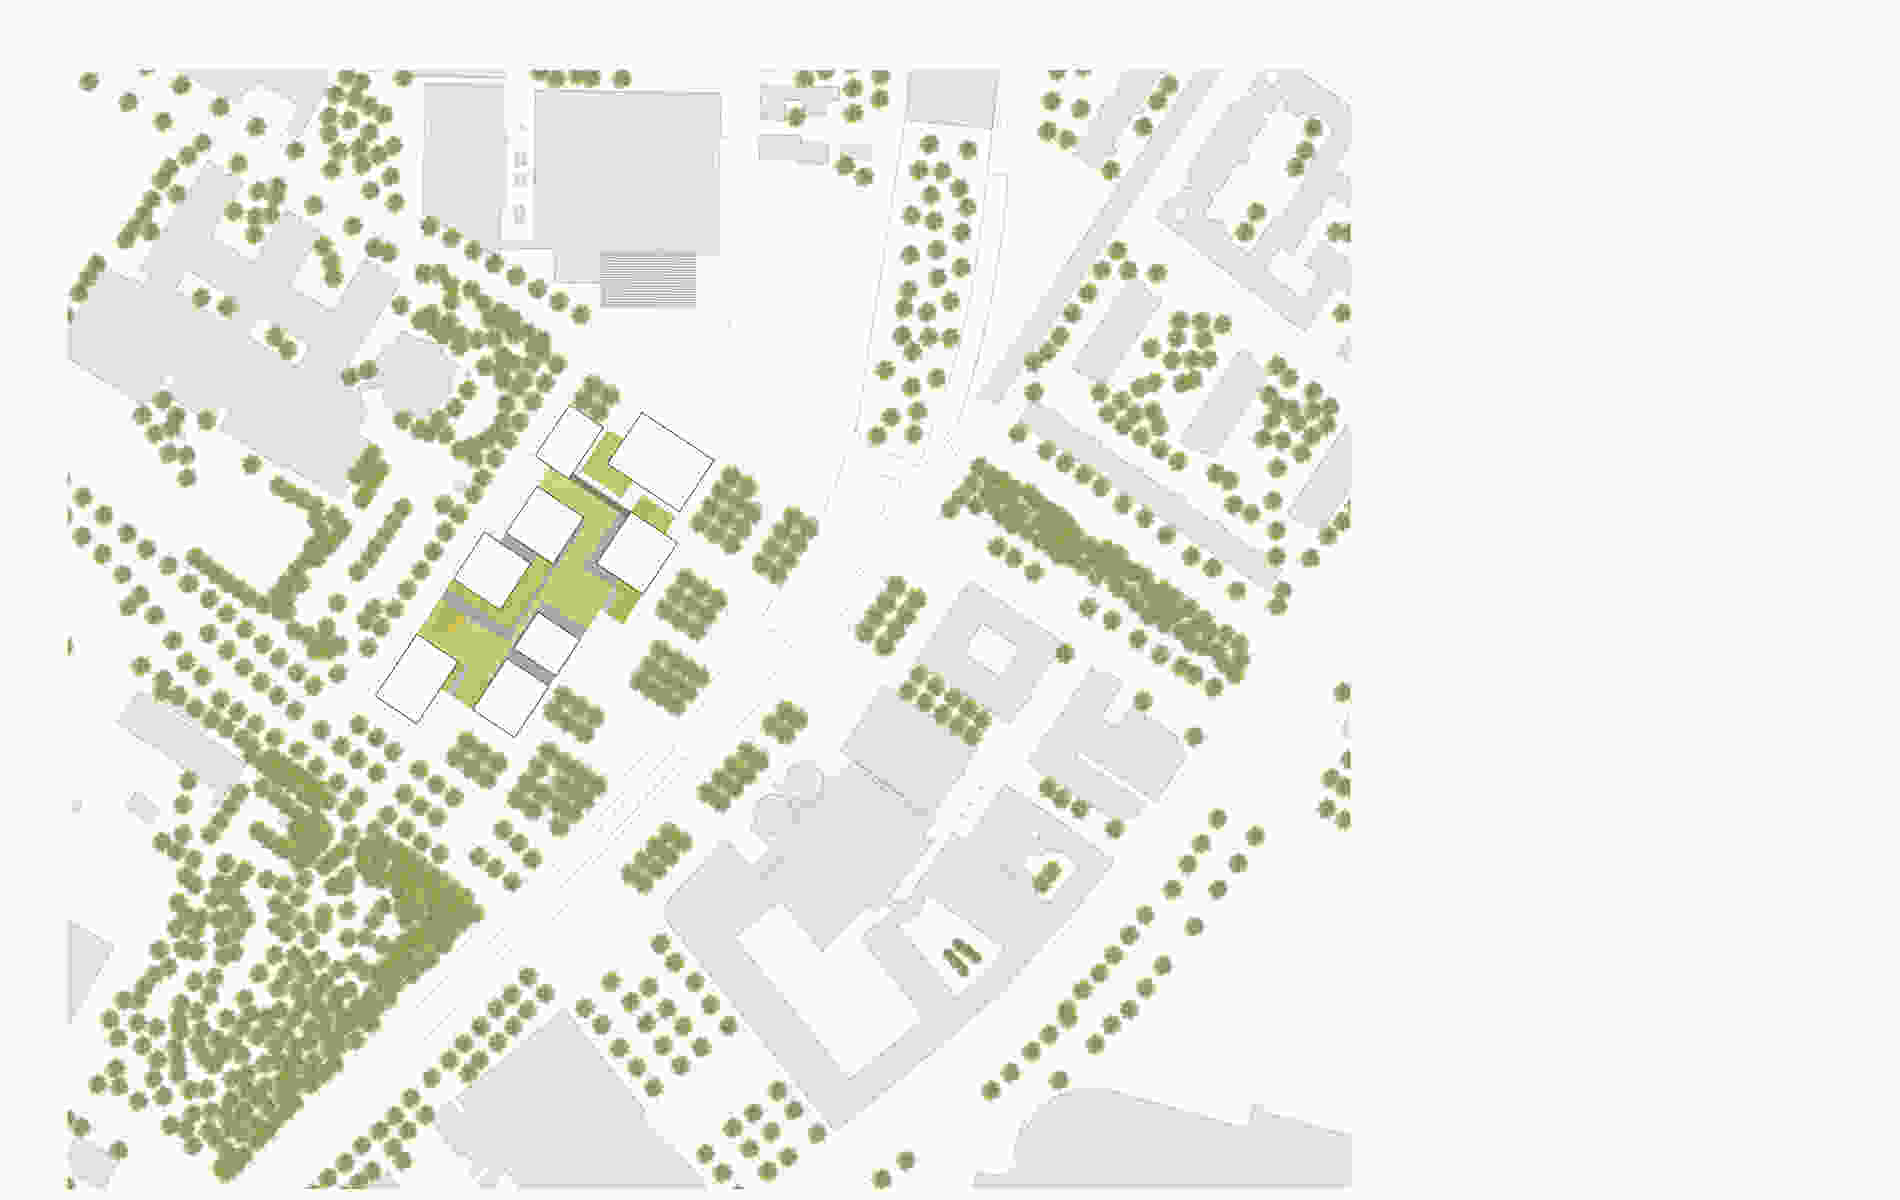 241 Vienna TWENTYTWO dm site plan